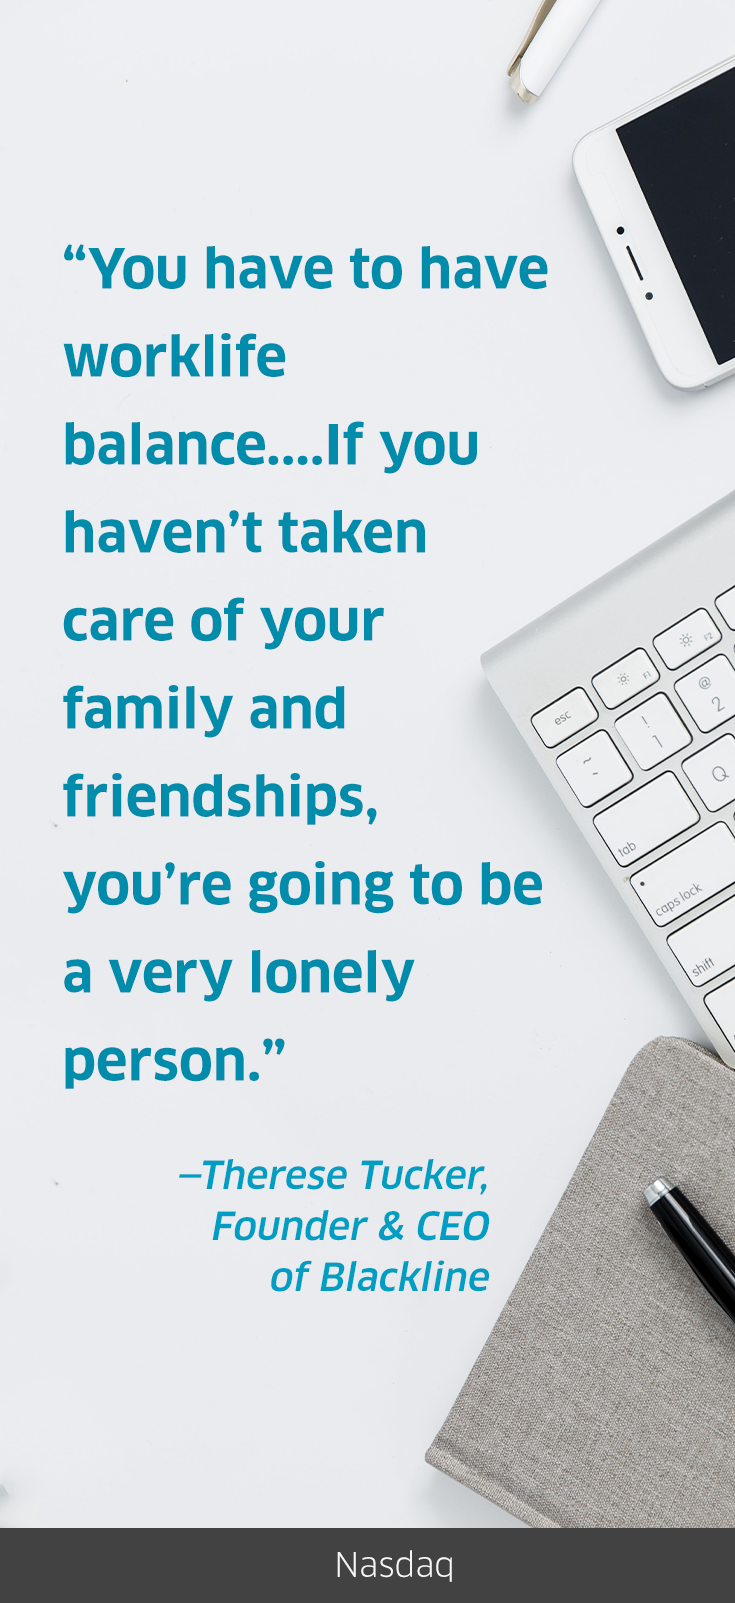 Talk about words on worklifebalance! Therese Tucker